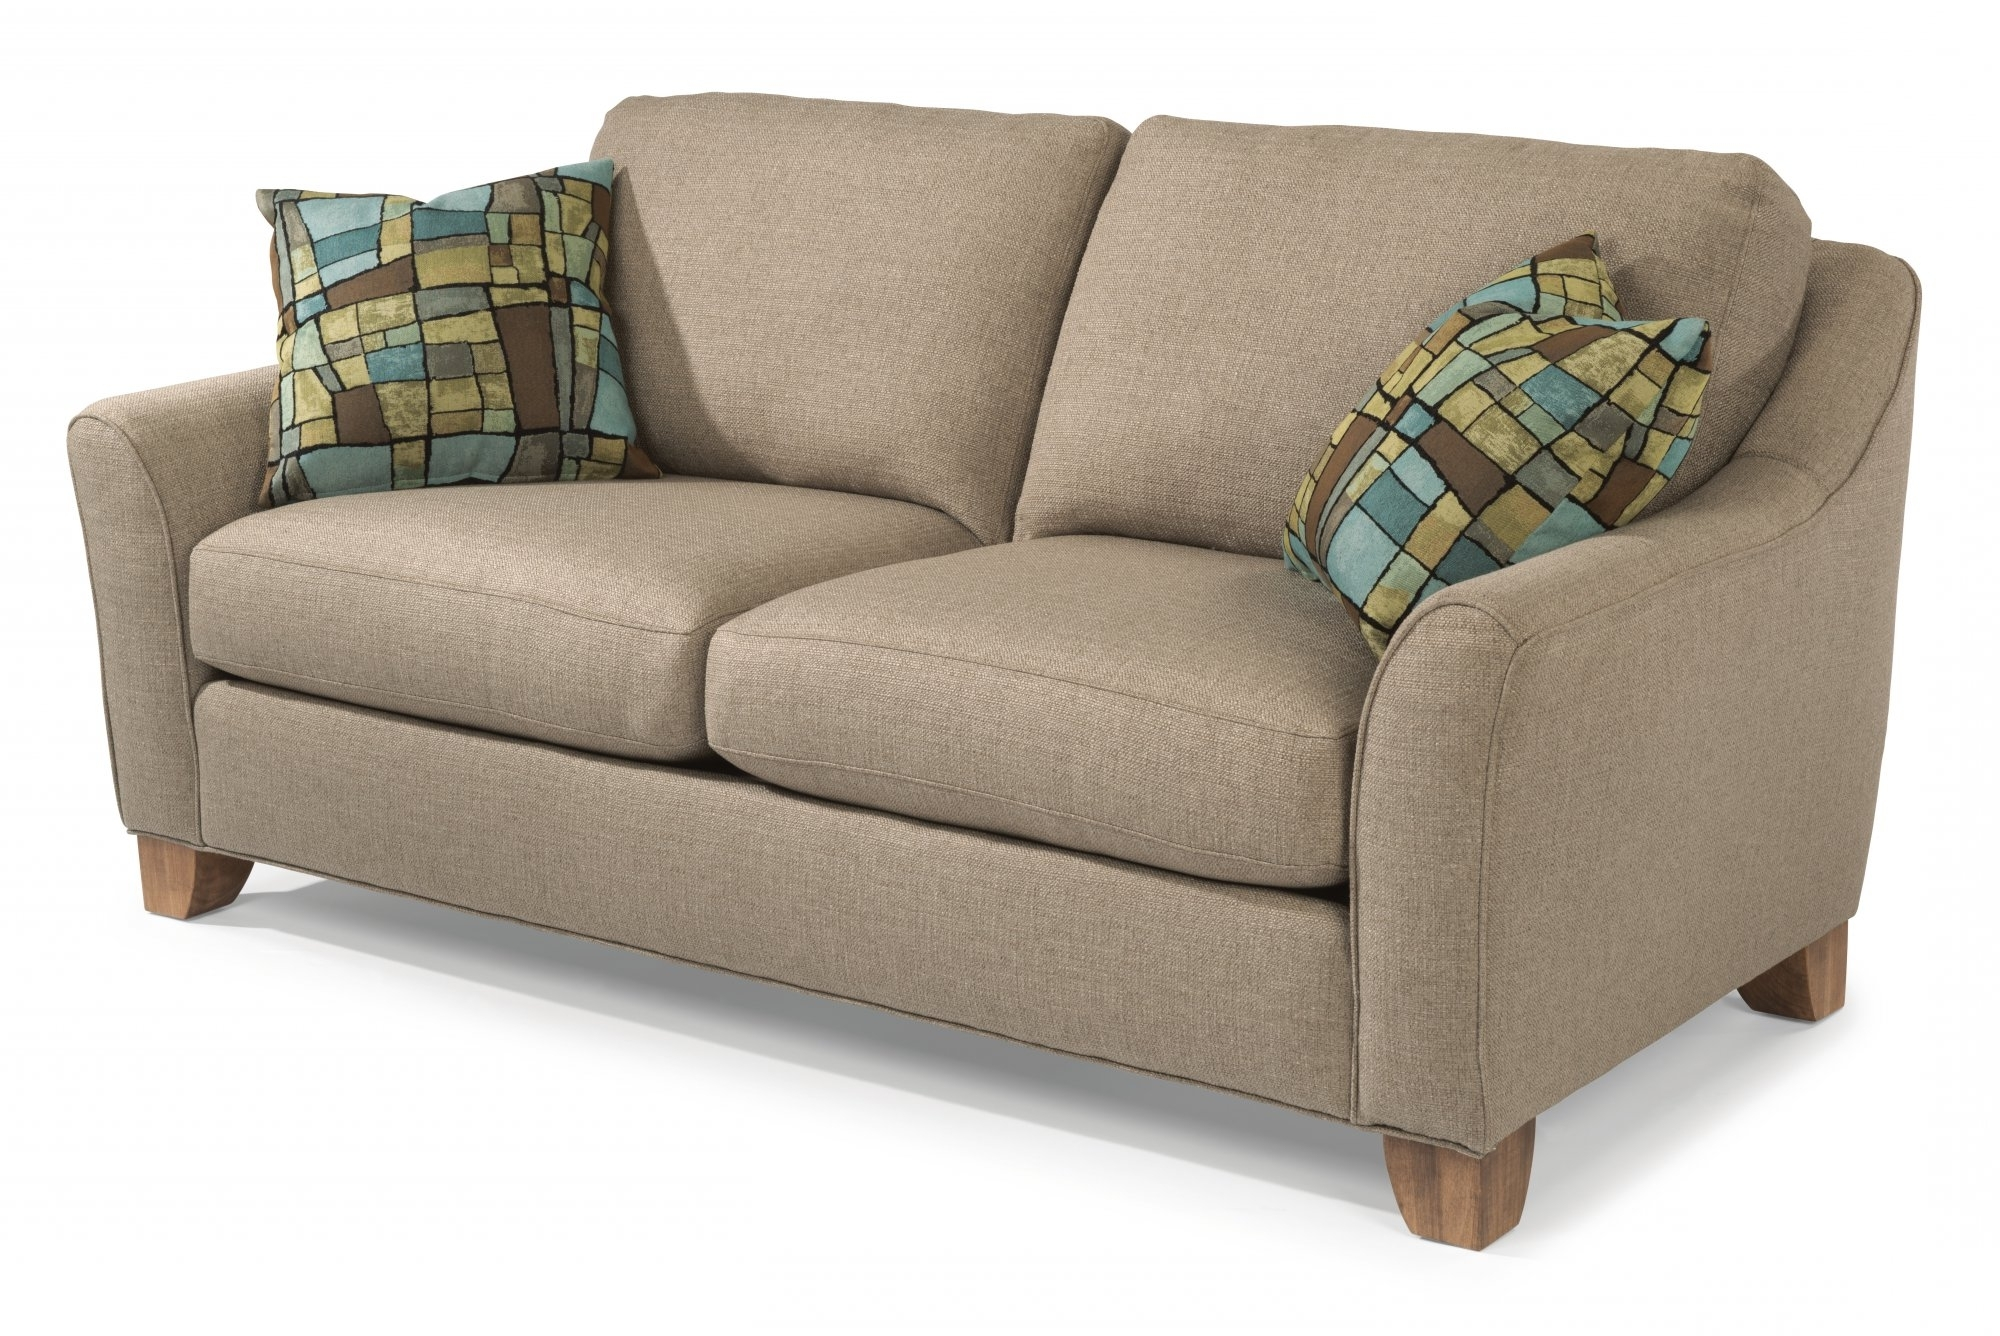 Twin Sleeper Sofa Chairs Pertaining To Most Popular Sofa : West Elm Henry Sofa 86 West Elm Henry Twin Sleeper Sofa (View 15 of 20)